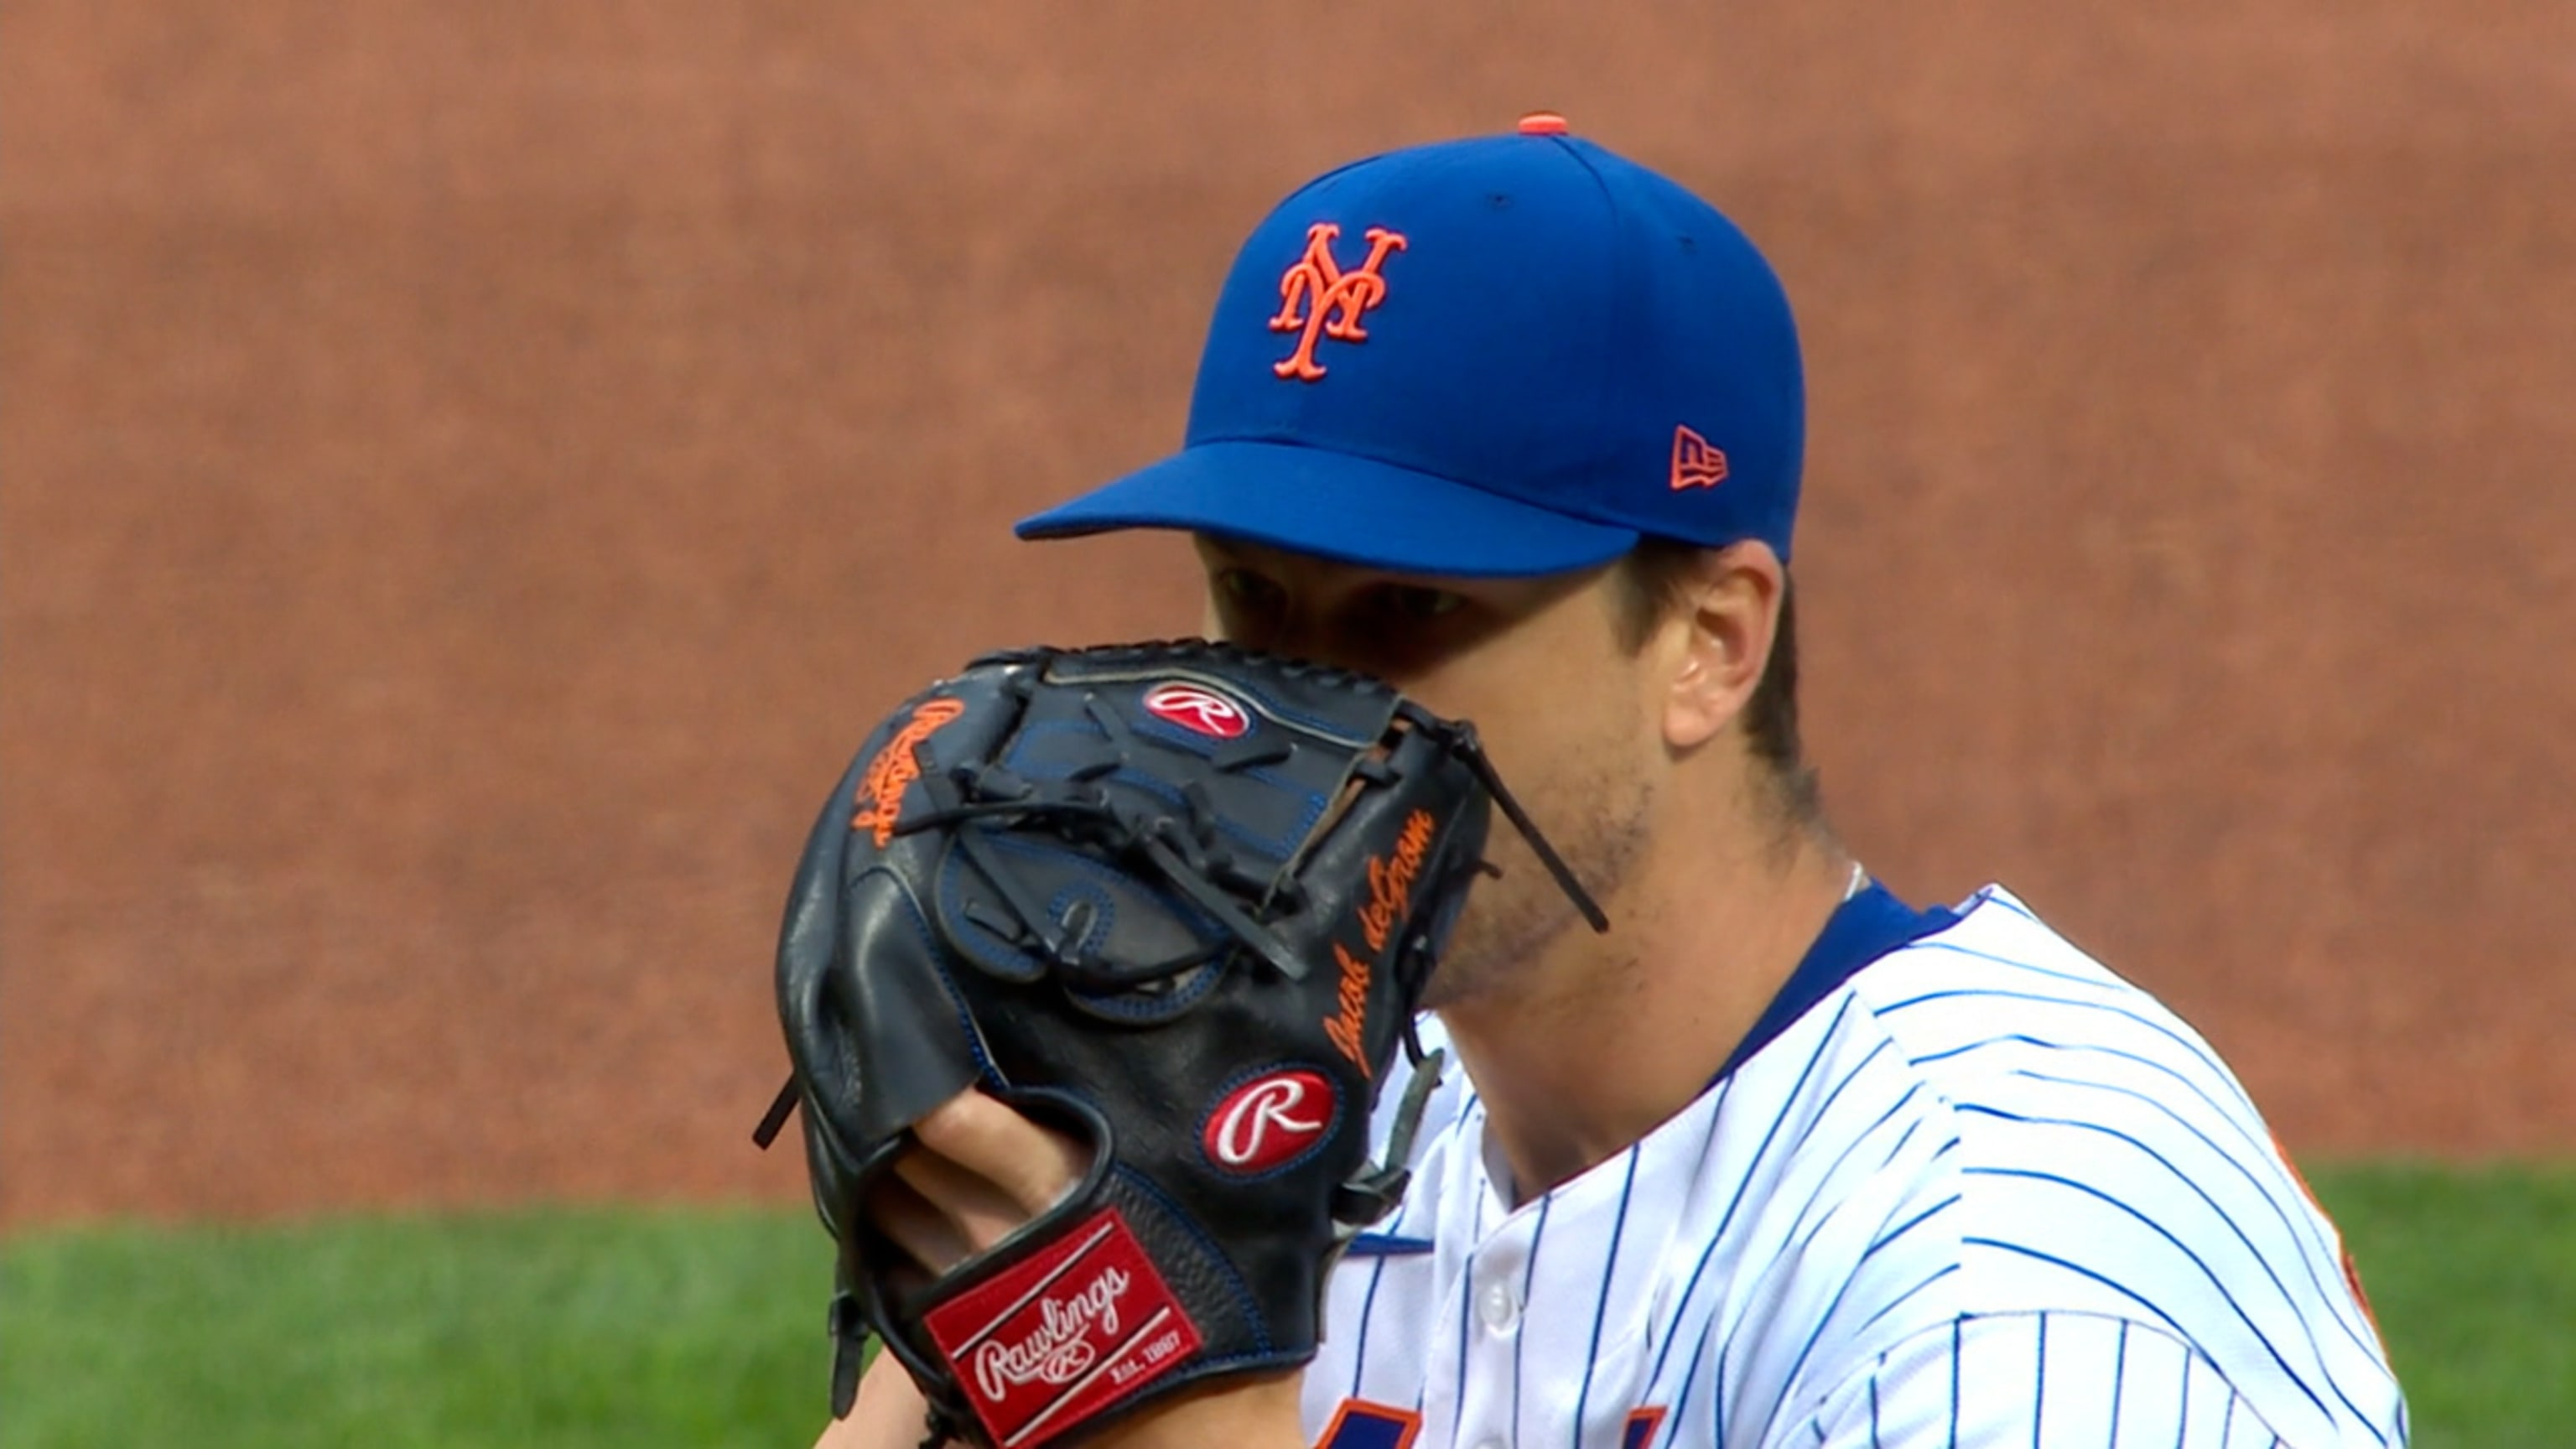 deGrom leads Mets in 1st half